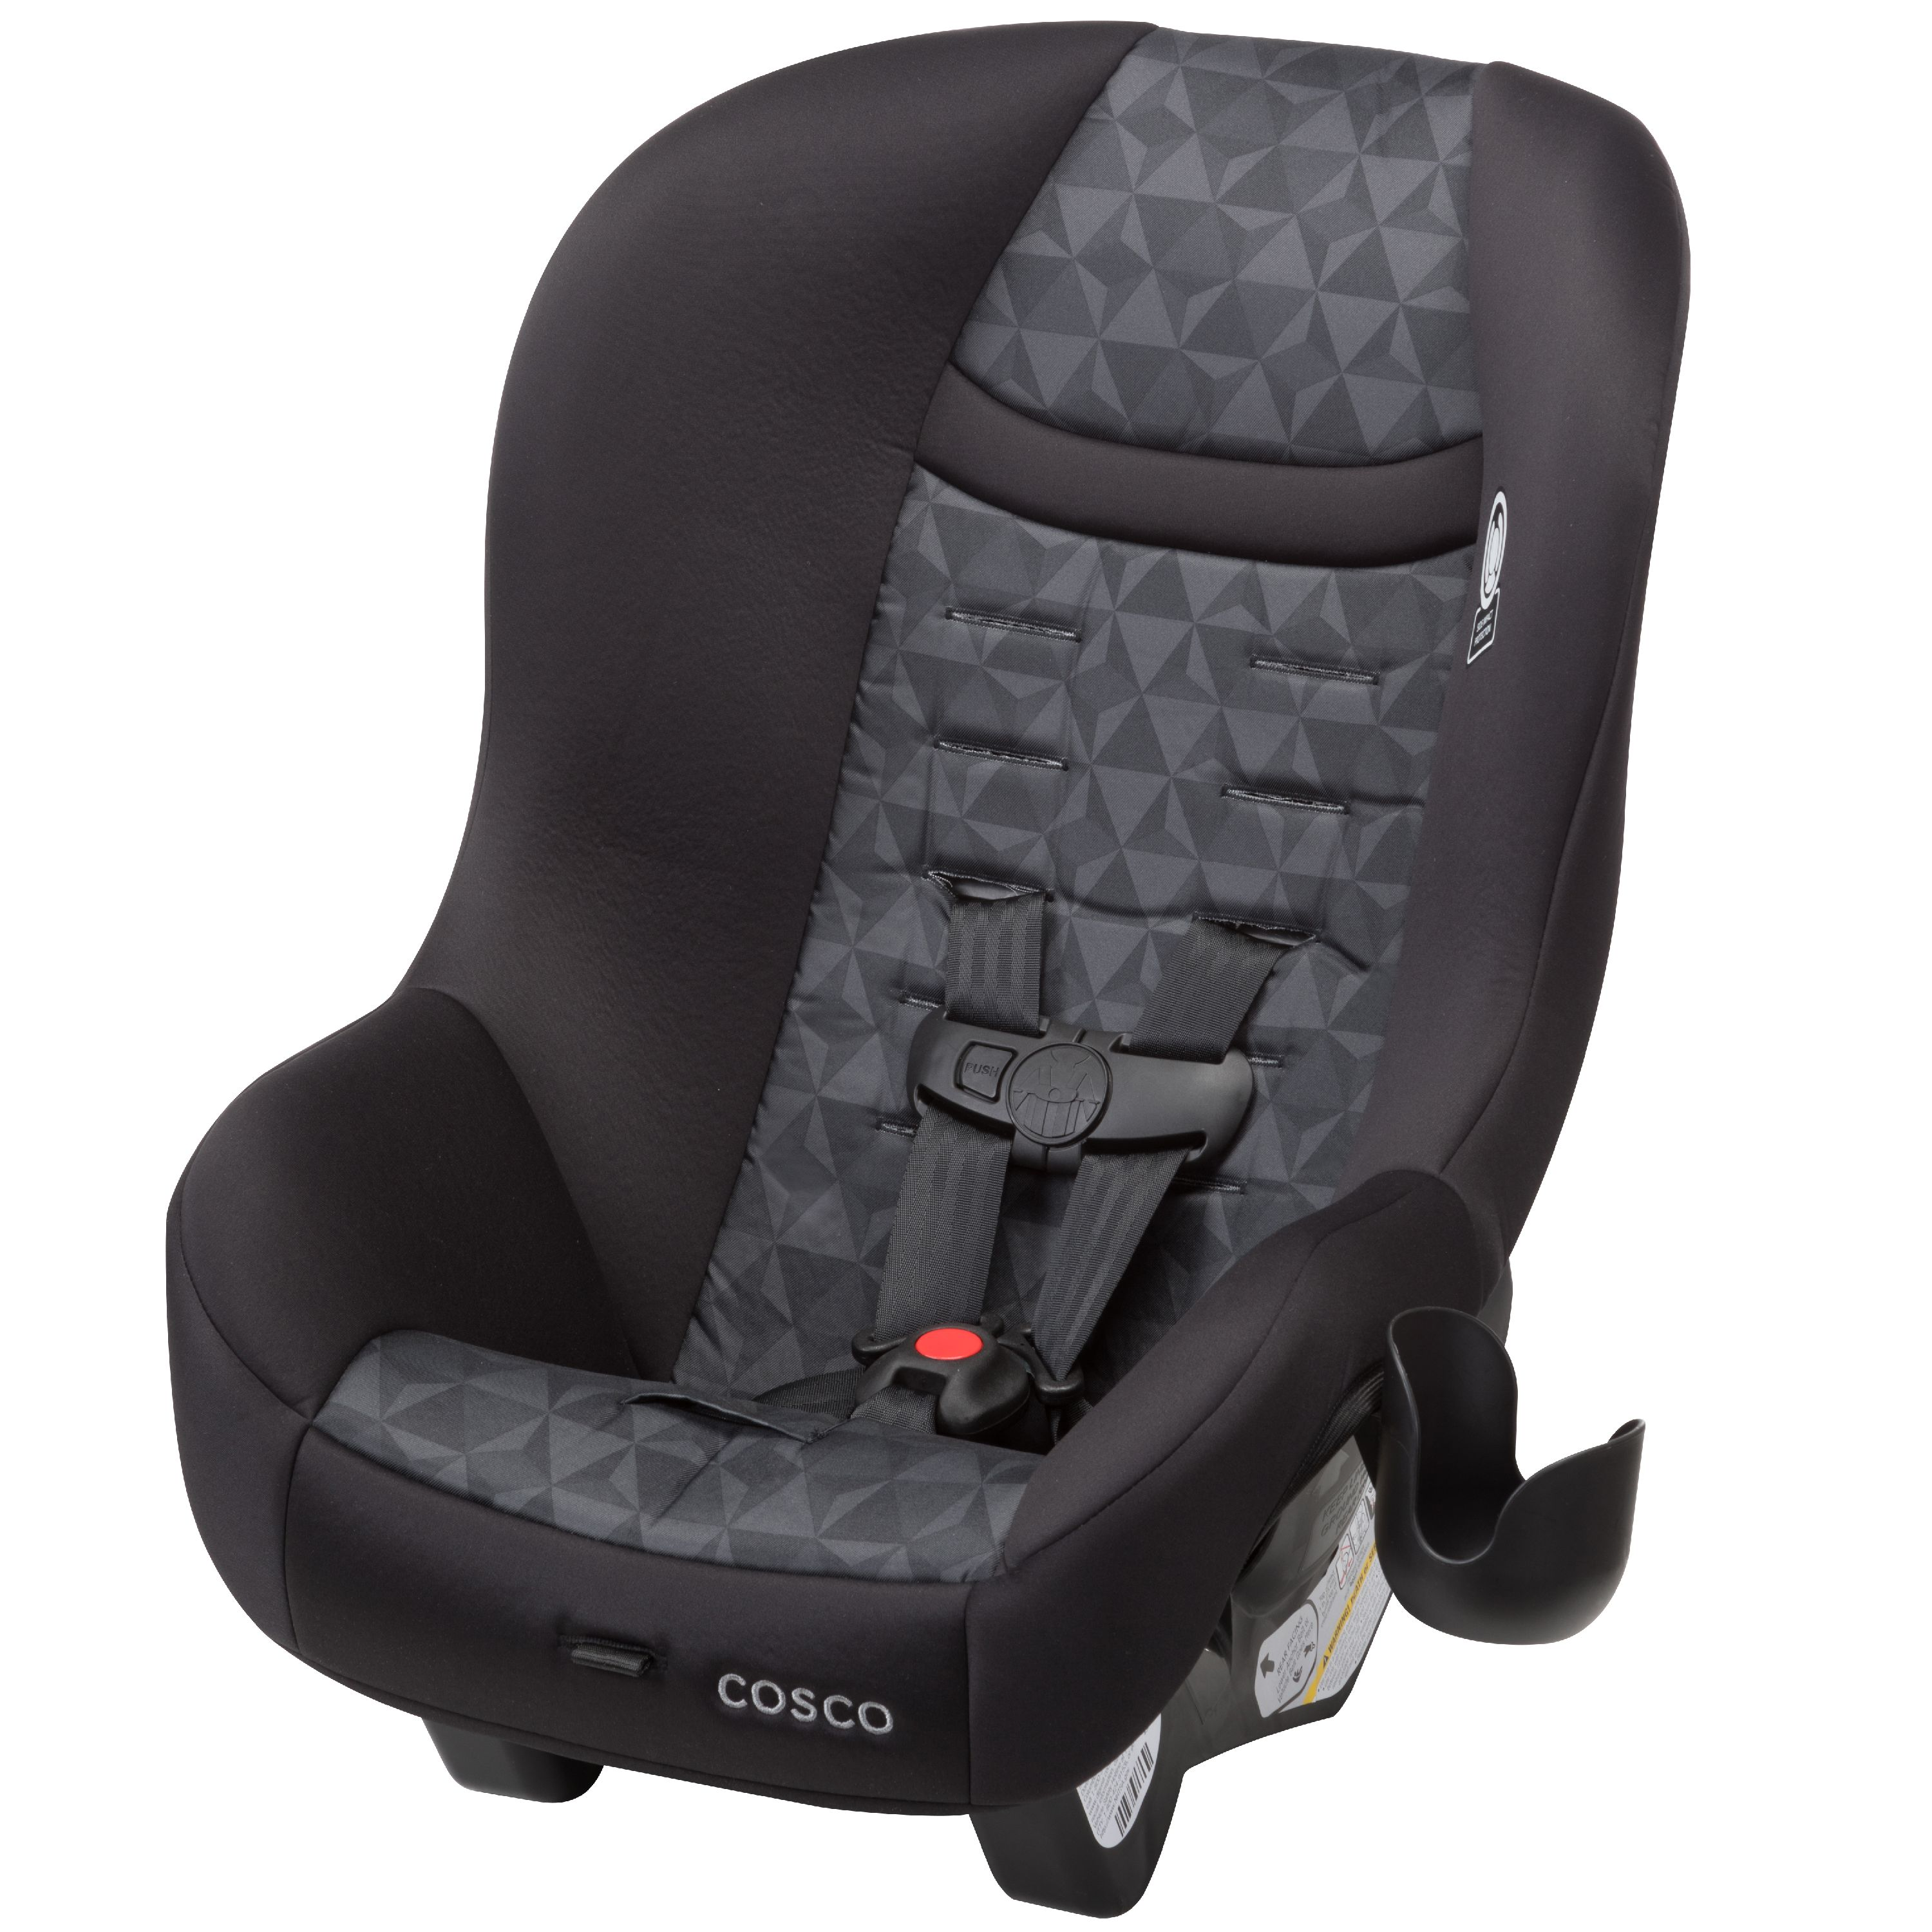 Cosco Scenera NEXT Geode Car Seat